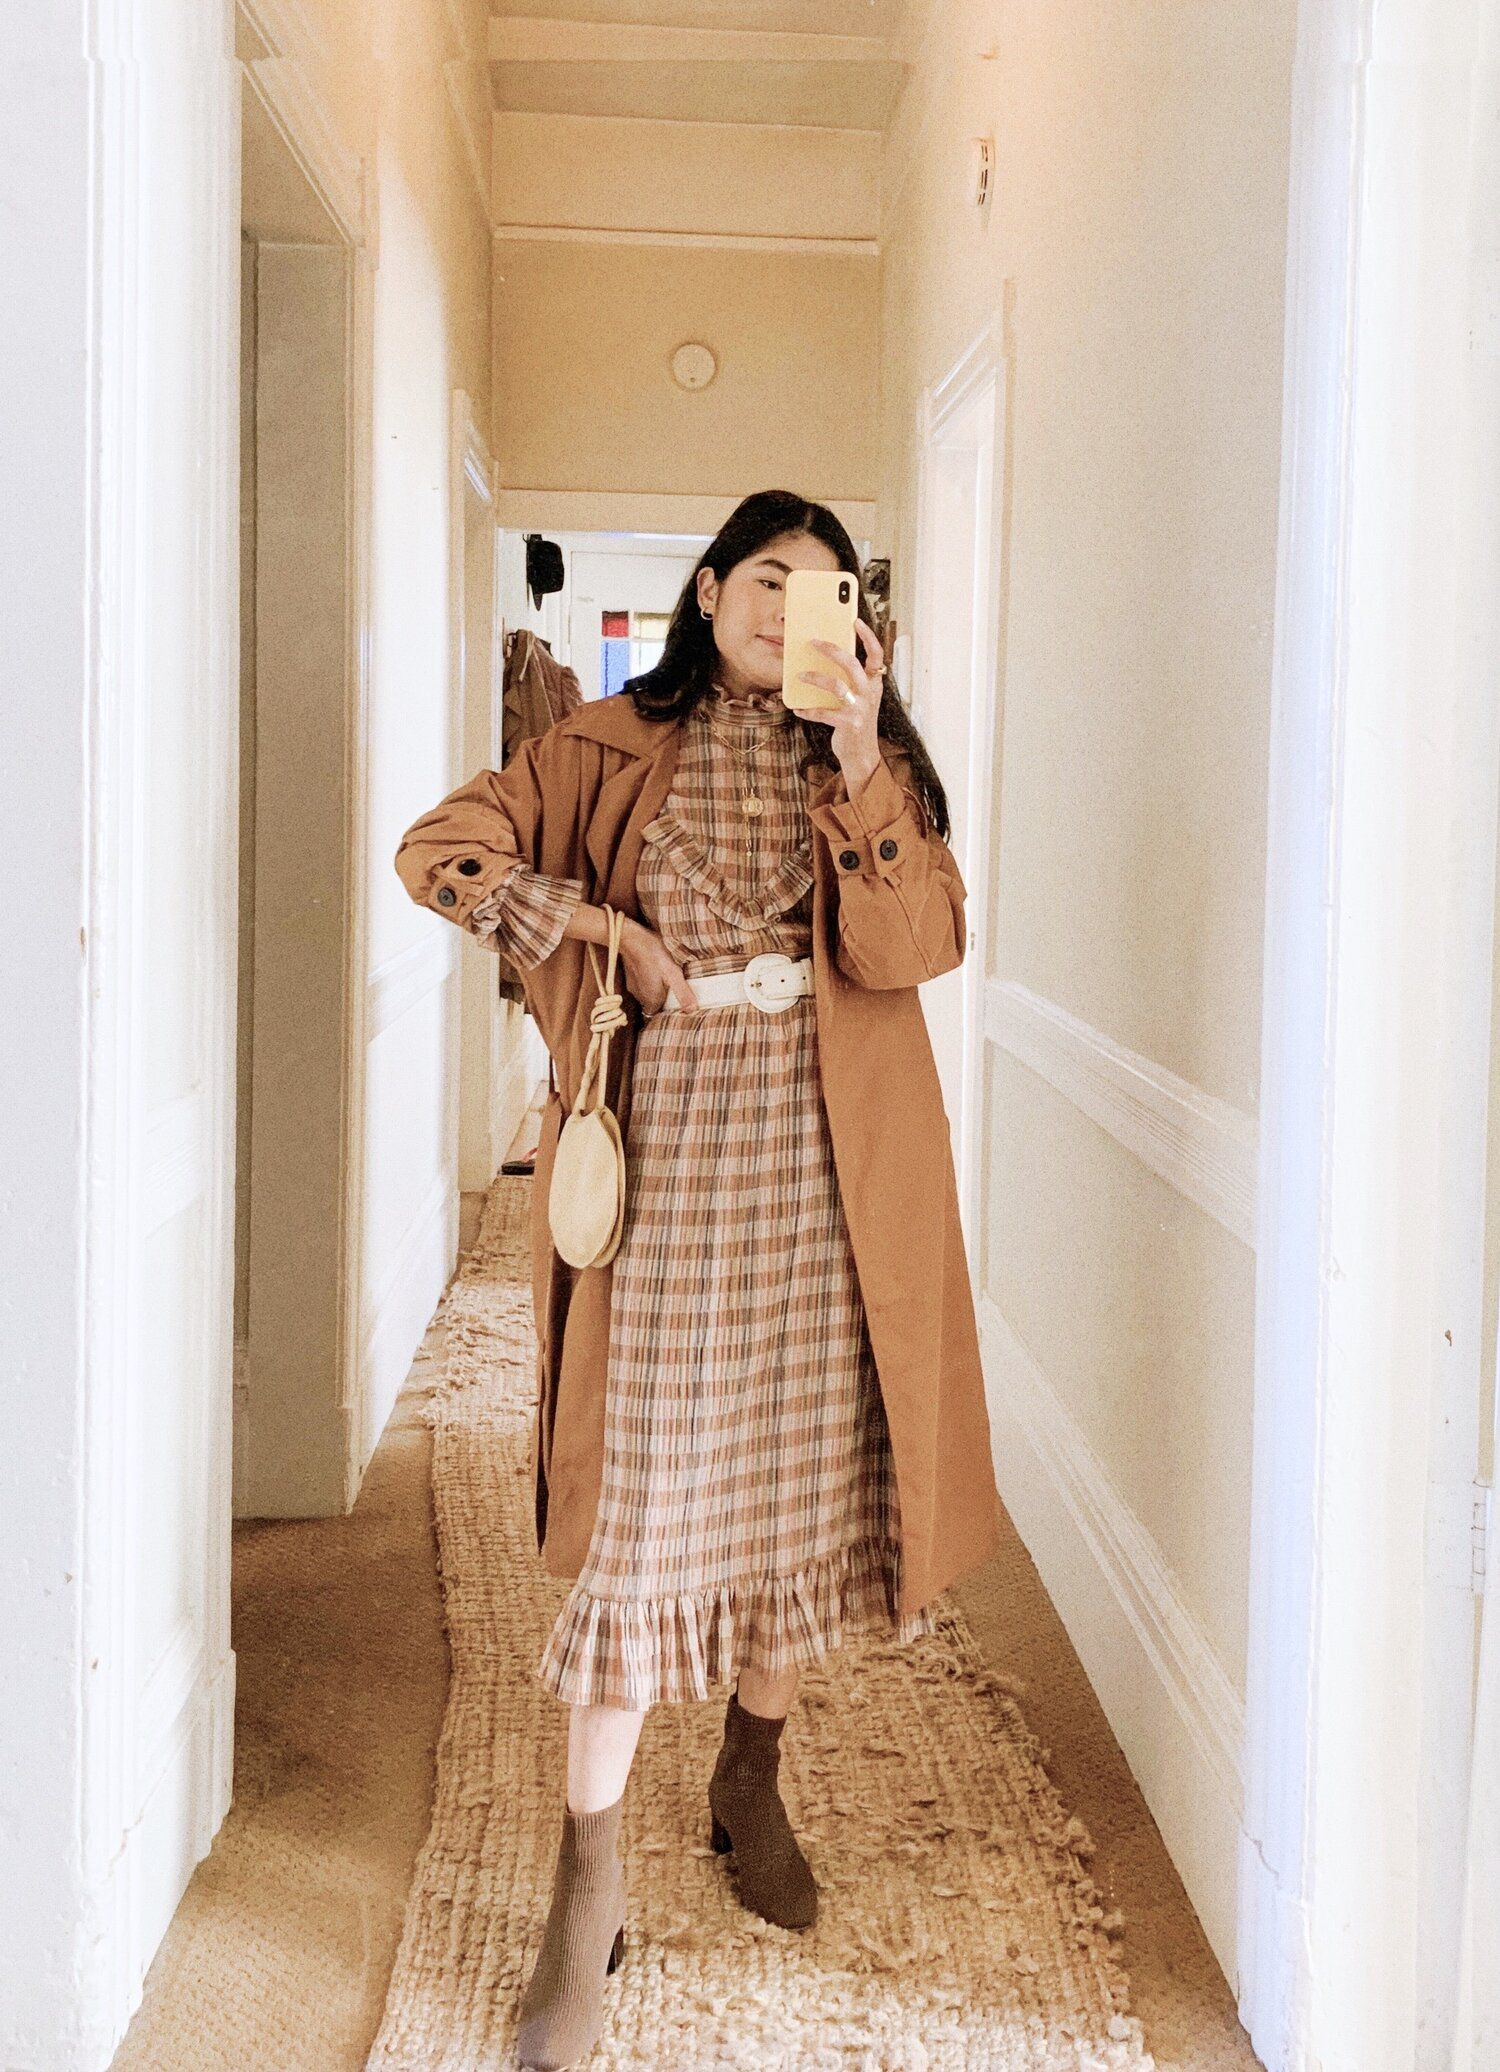 #sustainablefashion #outfits #outfitinspiration #vintagestyle